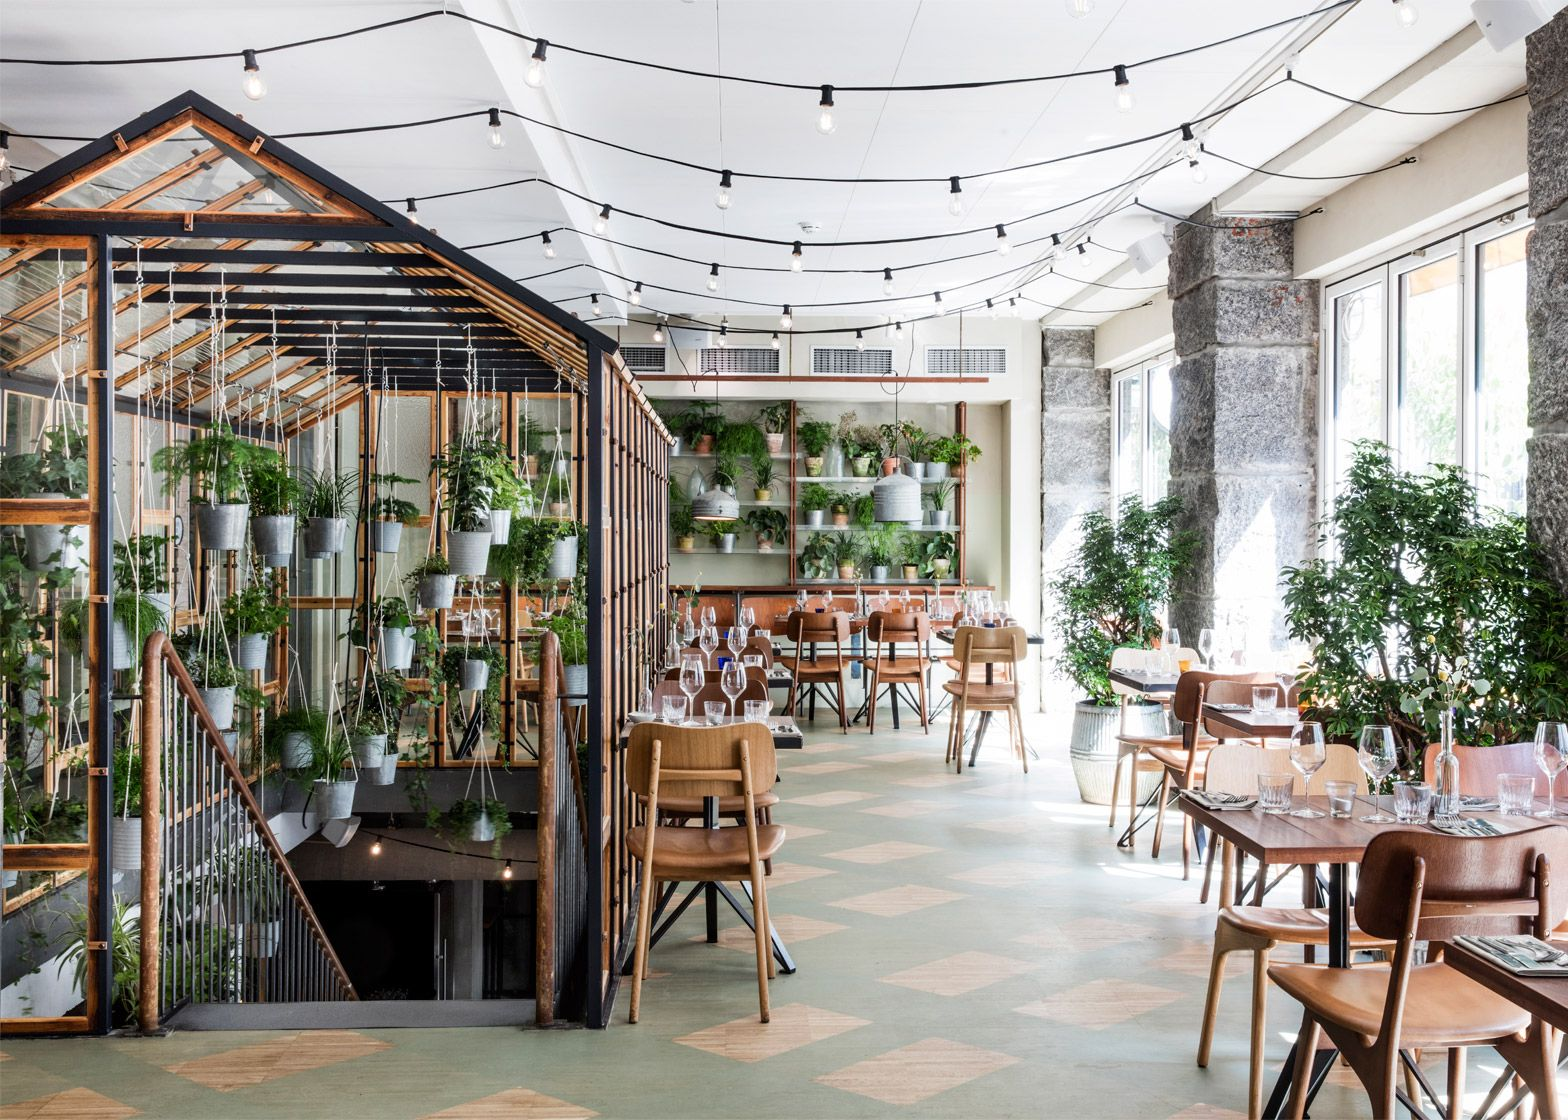 genbyg's indoor garden restaurant made of recycled materials